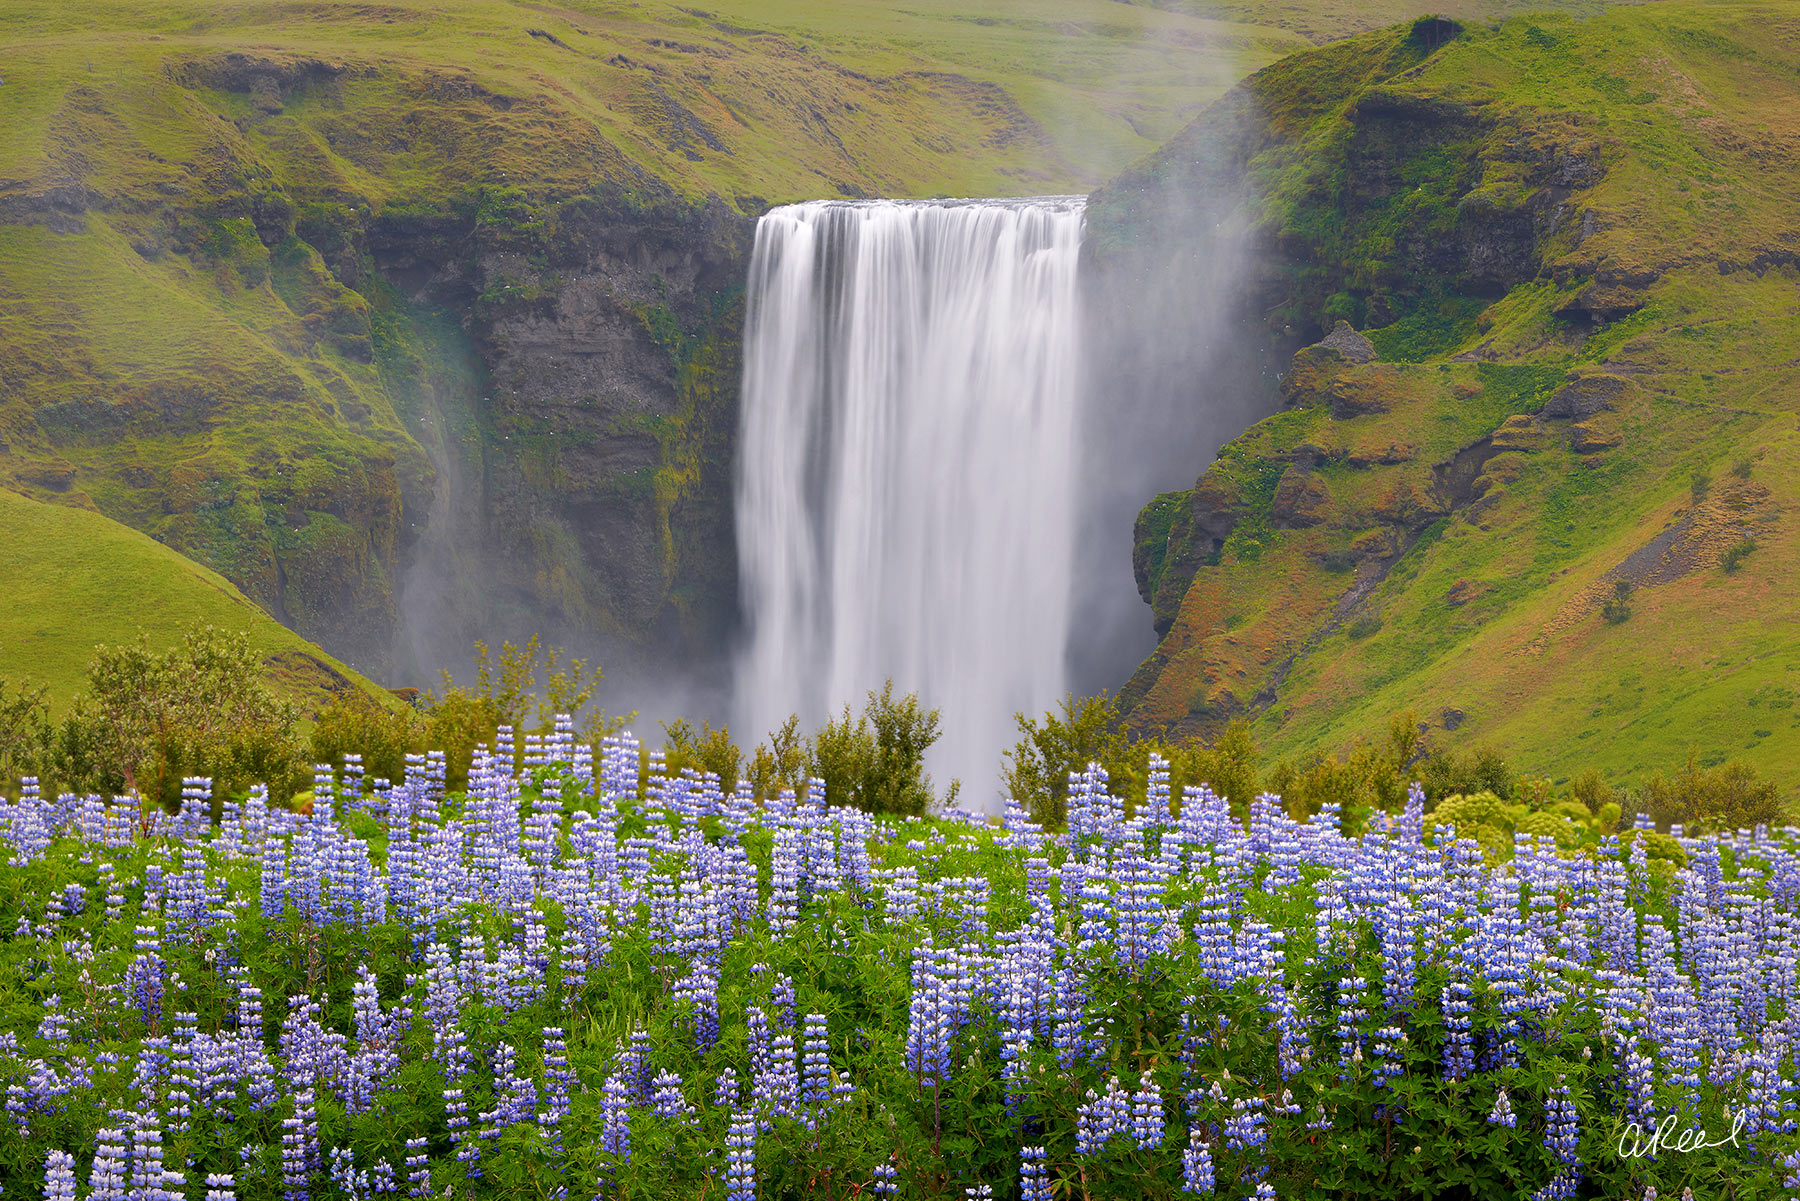 Transform your space with Aaron Reed's limited edition photography print, Magic Carpet, from his Iceland Nature Photography collection...